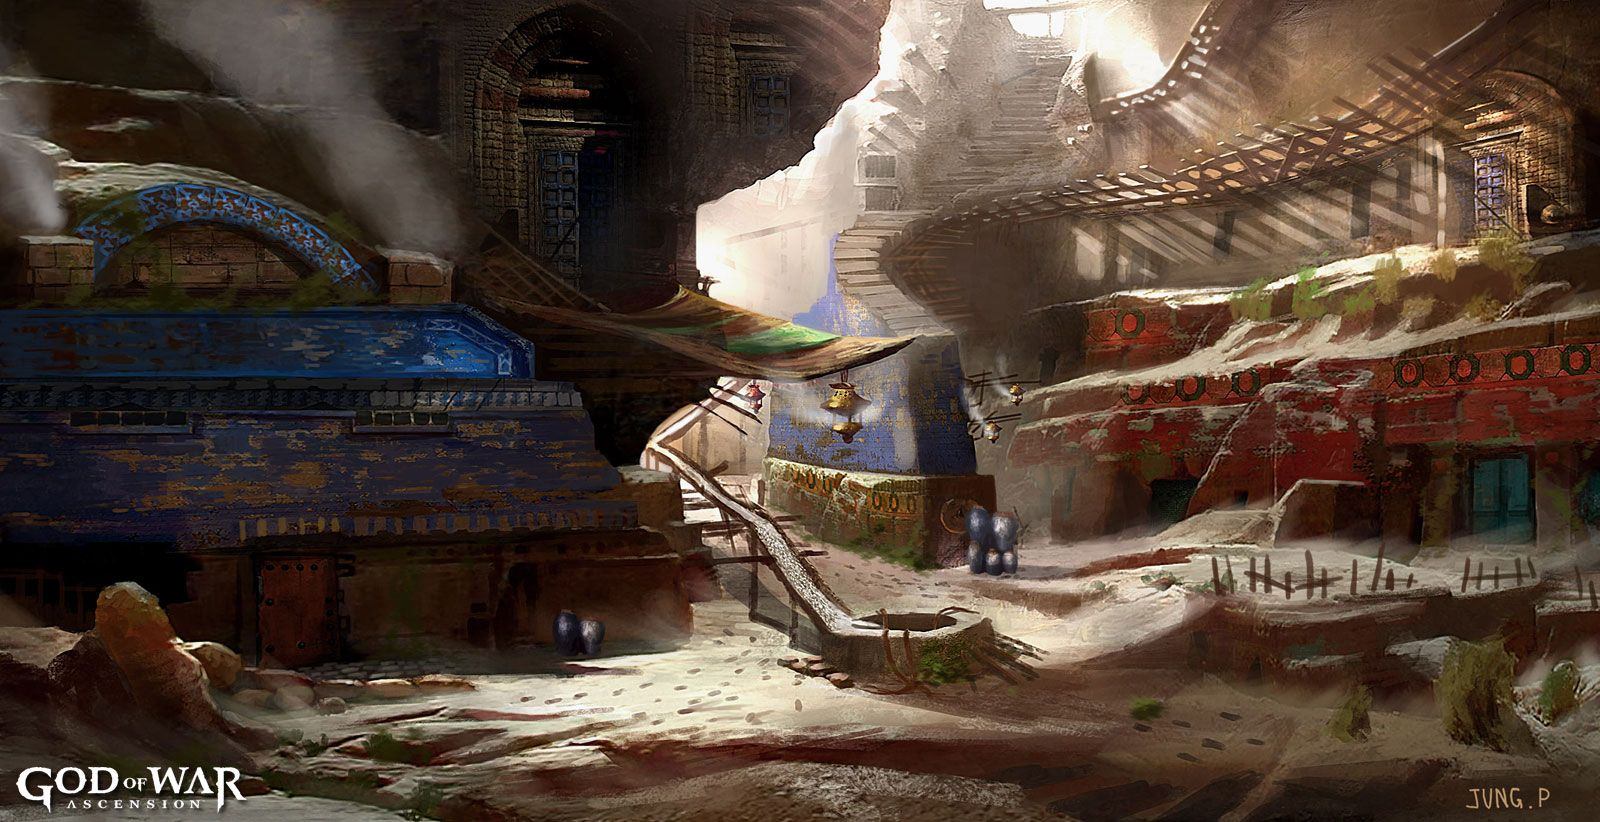 Concept art, God of War: Ascension